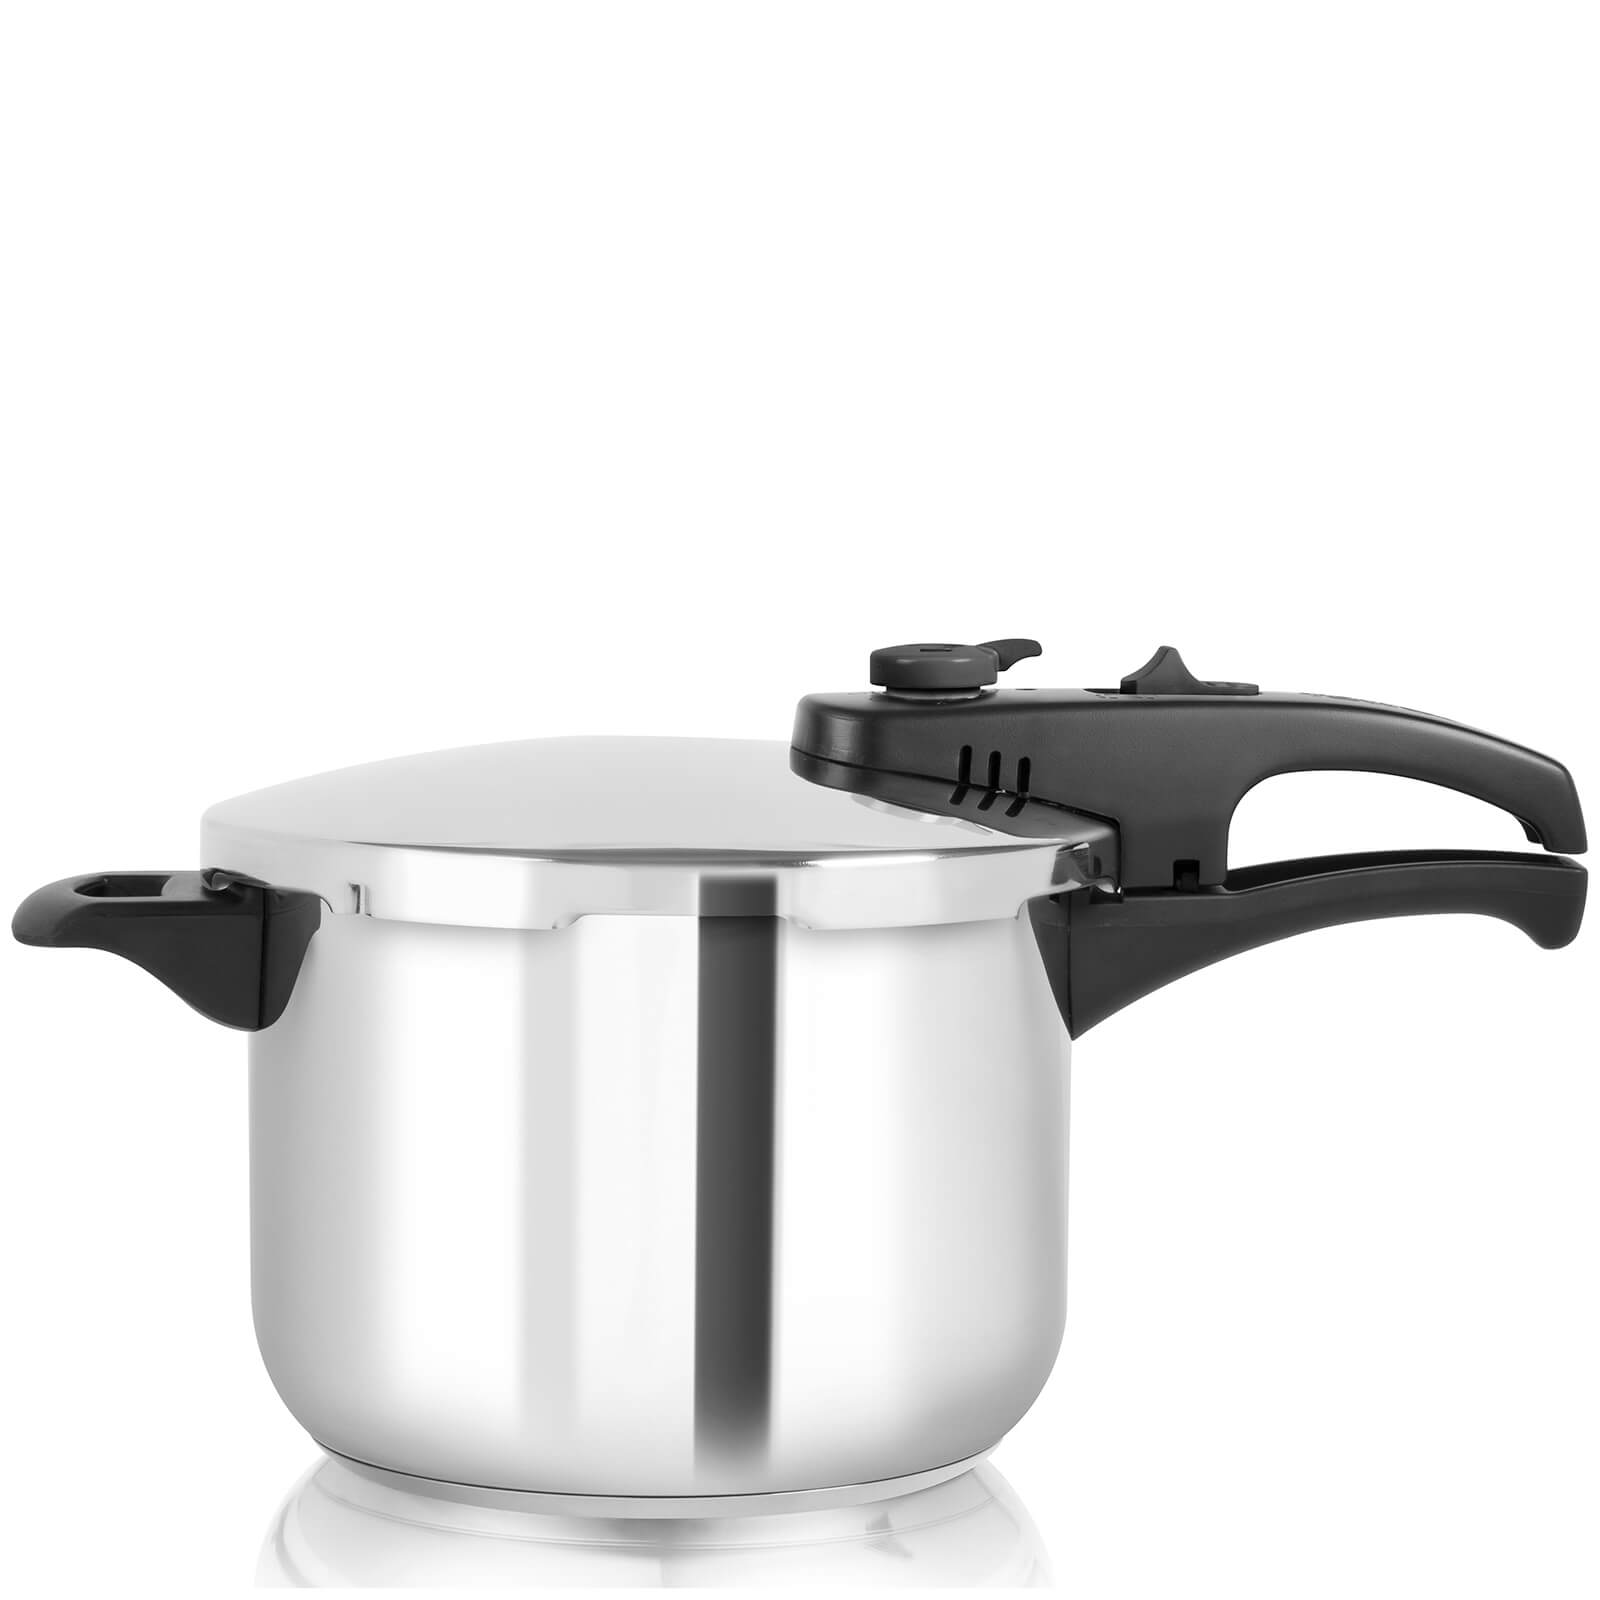 Tower T80244 Stainless Steel Pressure Cooker 6L/22cm